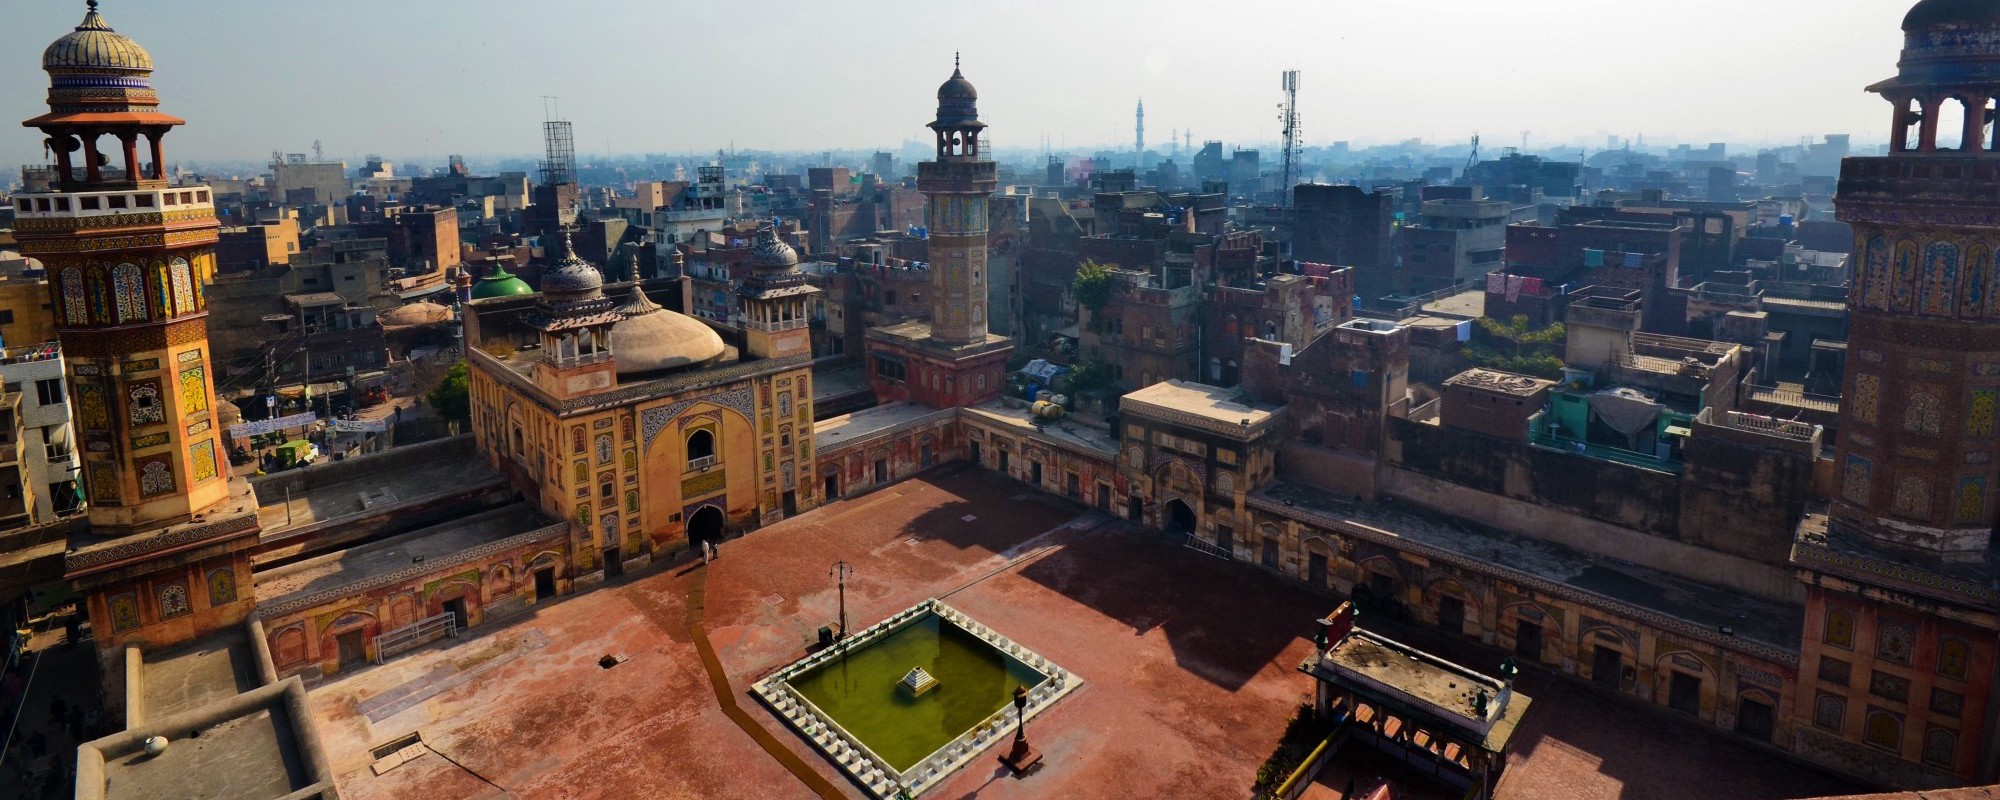 Lahore Nama Searching For The City That Was And That Ought To Be